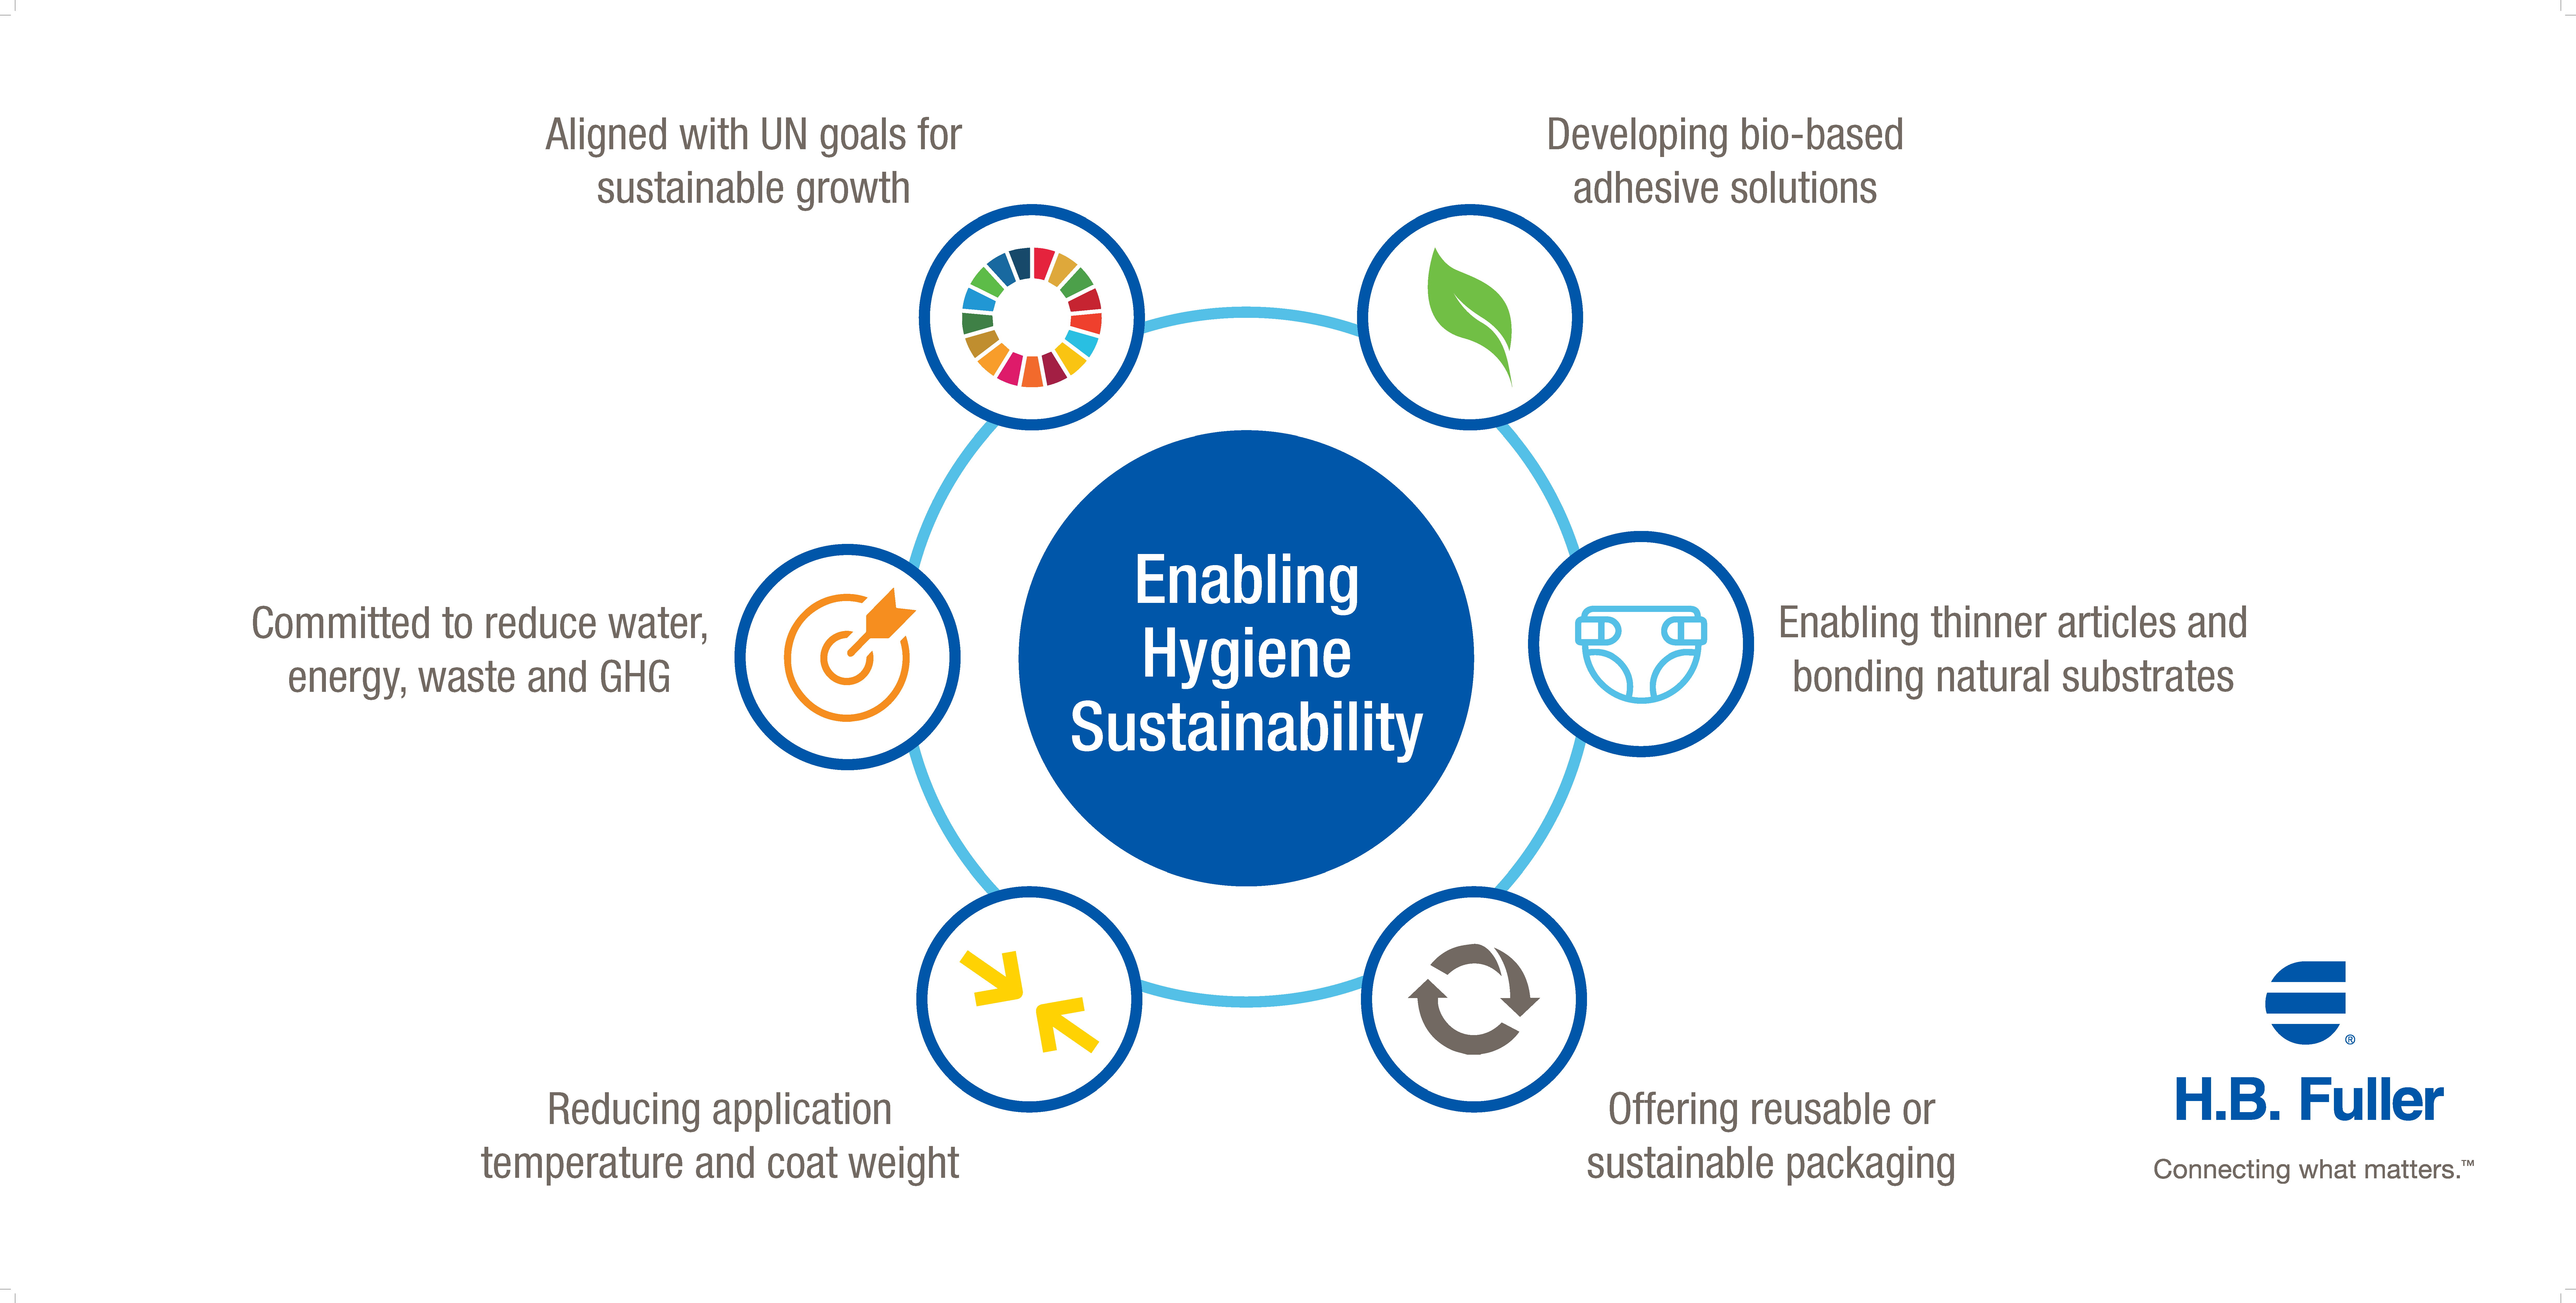 Enabling Hygiene Sustainability